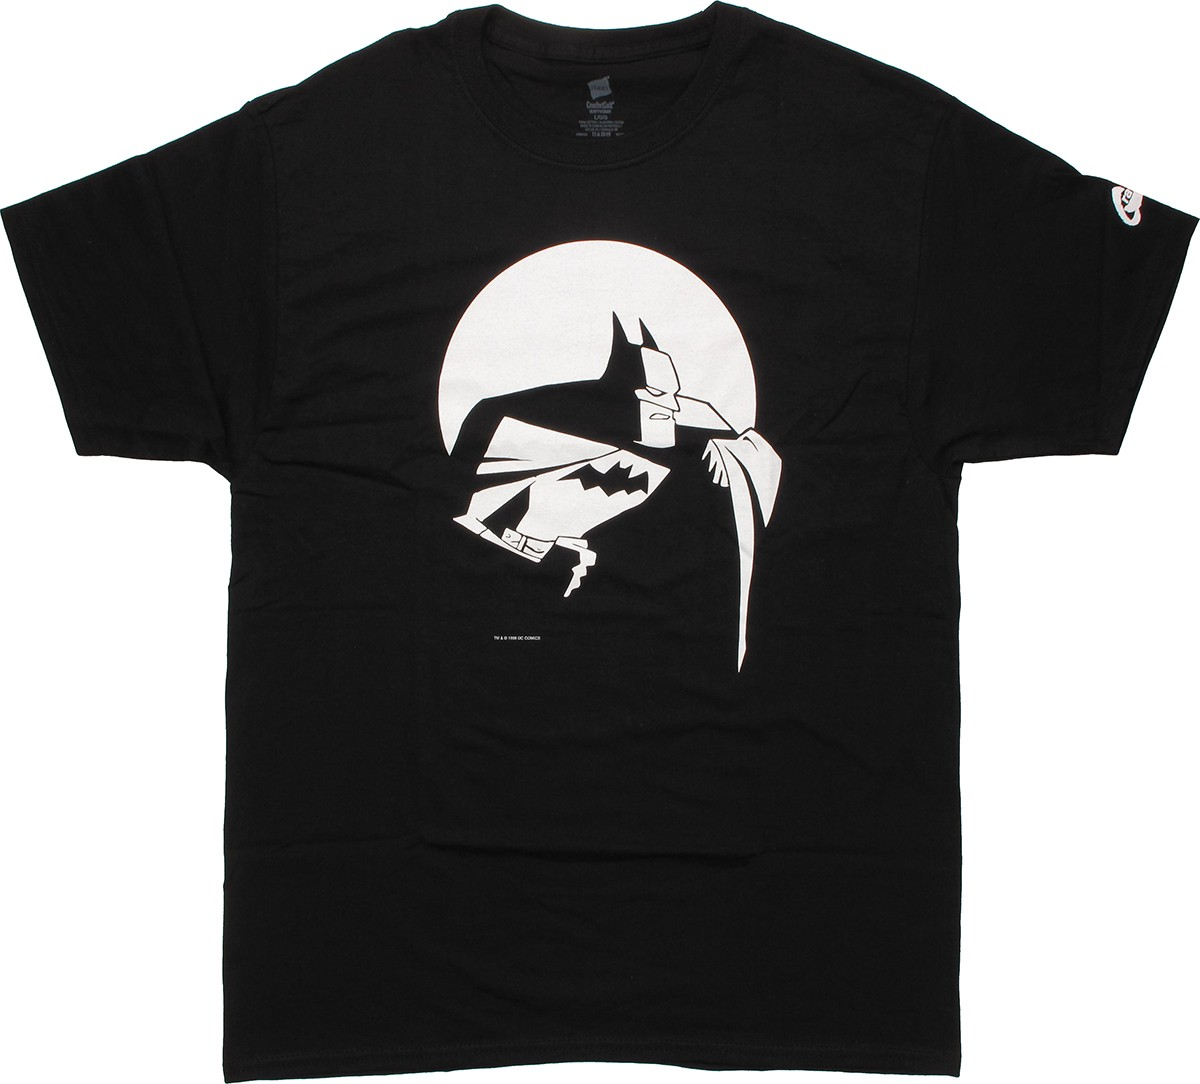 T-Shirts. Athletic Rash Guards. Athletic Shirts & Tops. Baby Bibs. Baby Bodysuits & One-Pieces. Backpacks. Batman - Clothing. Batman Themes. Batman - Clothing. Store availability. Men's black dc comics reflective batman logo short sleeve tee. New. Product Image. Price $ 9.